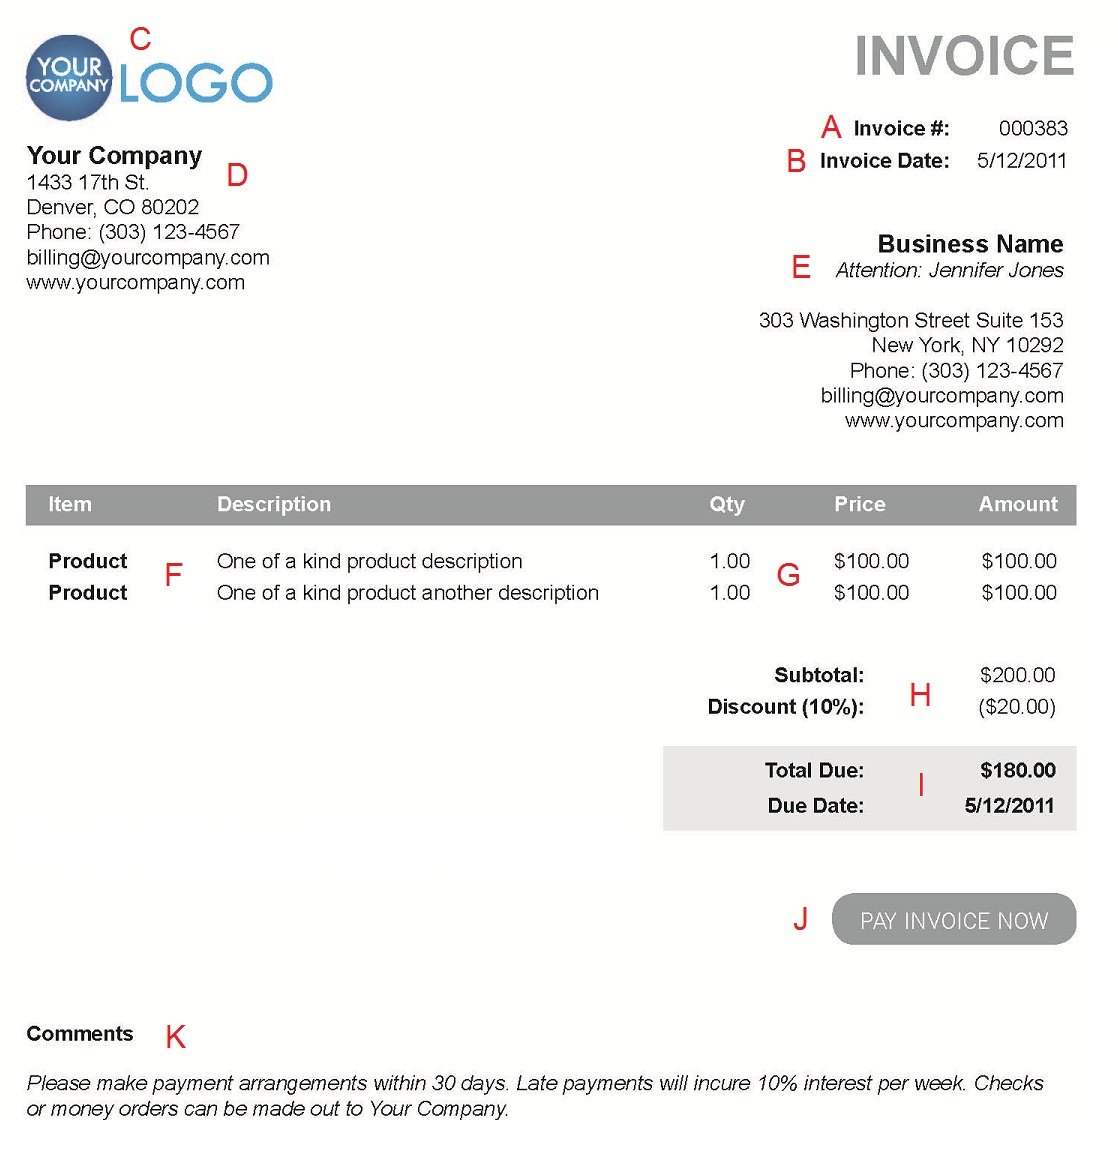 Totallocalus  Unusual The  Different Sections Of An Electronic Payment Invoice With Exquisite A  With Amusing Create Invoice For Free Also Toyota Tacoma Invoice In Addition Accounts Receivable Invoice And Invoice Prices Of New Cars As Well As Invoice Construction Additionally Get Money Like An Invoice From Paysimplecom With Totallocalus  Exquisite The  Different Sections Of An Electronic Payment Invoice With Amusing A  And Unusual Create Invoice For Free Also Toyota Tacoma Invoice In Addition Accounts Receivable Invoice From Paysimplecom